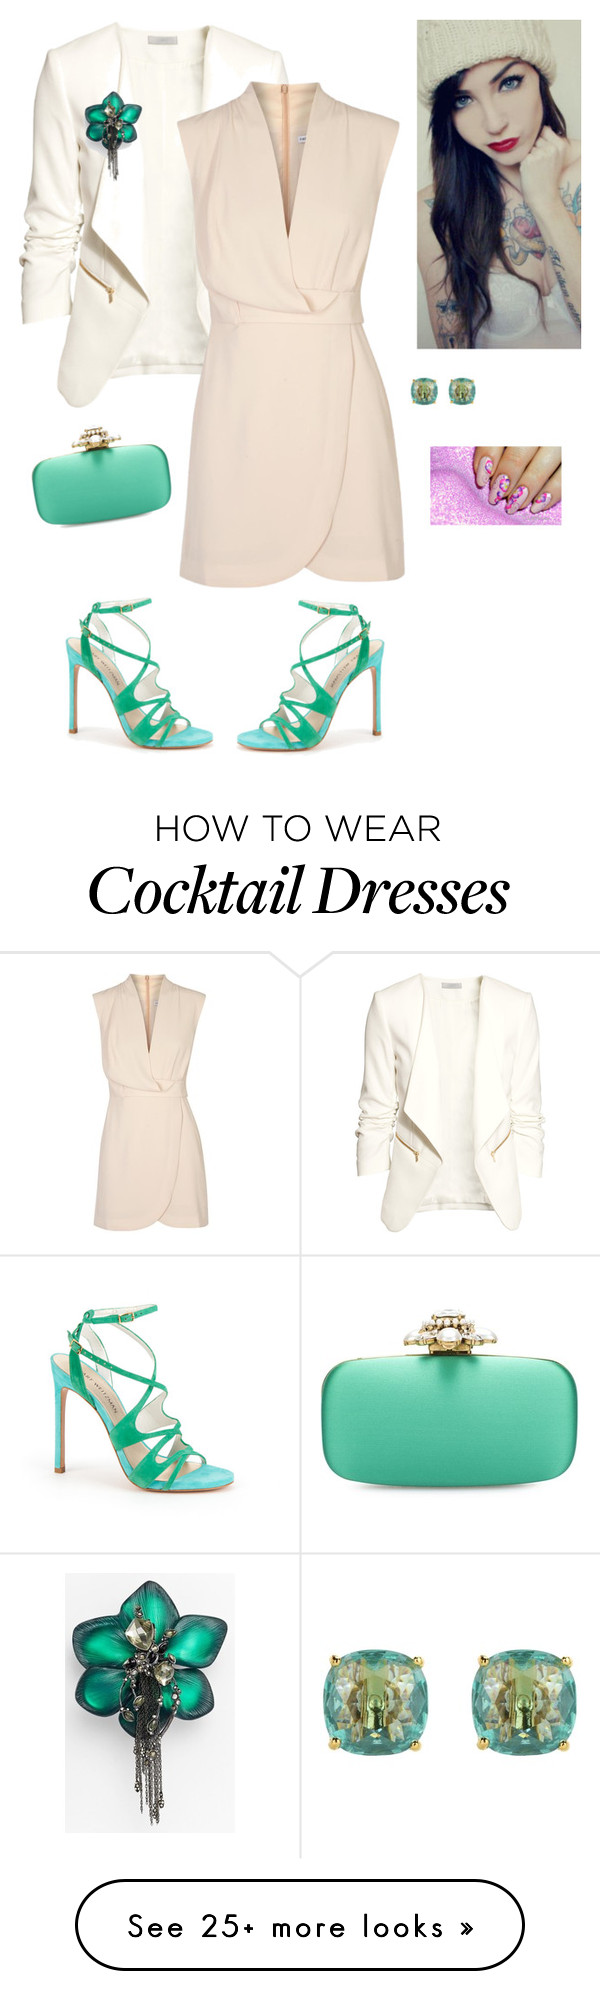 """""""Spring Green"""" by empresslal on Polyvore featuring H&M, Finders Keepers, Stuart Weitzman, Alexis Bittar, Kate Spade, Oscar de la Renta, fashionstyle, topstyle, uniquegirls and onlydreamers"""